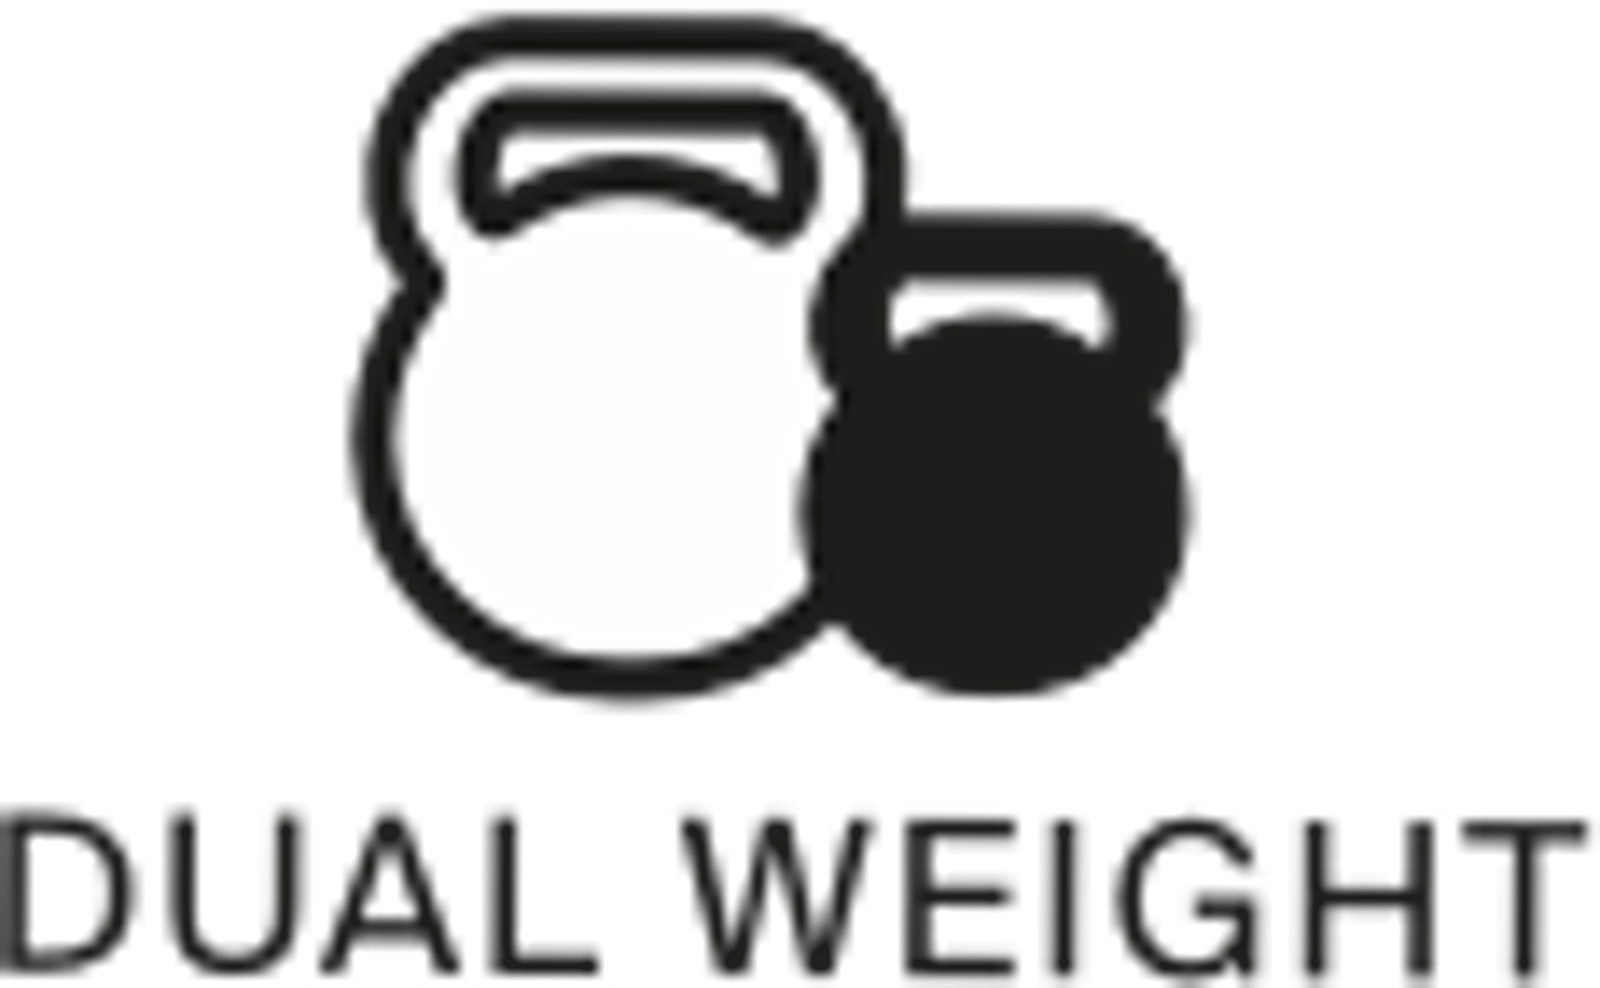 Dual weight certification